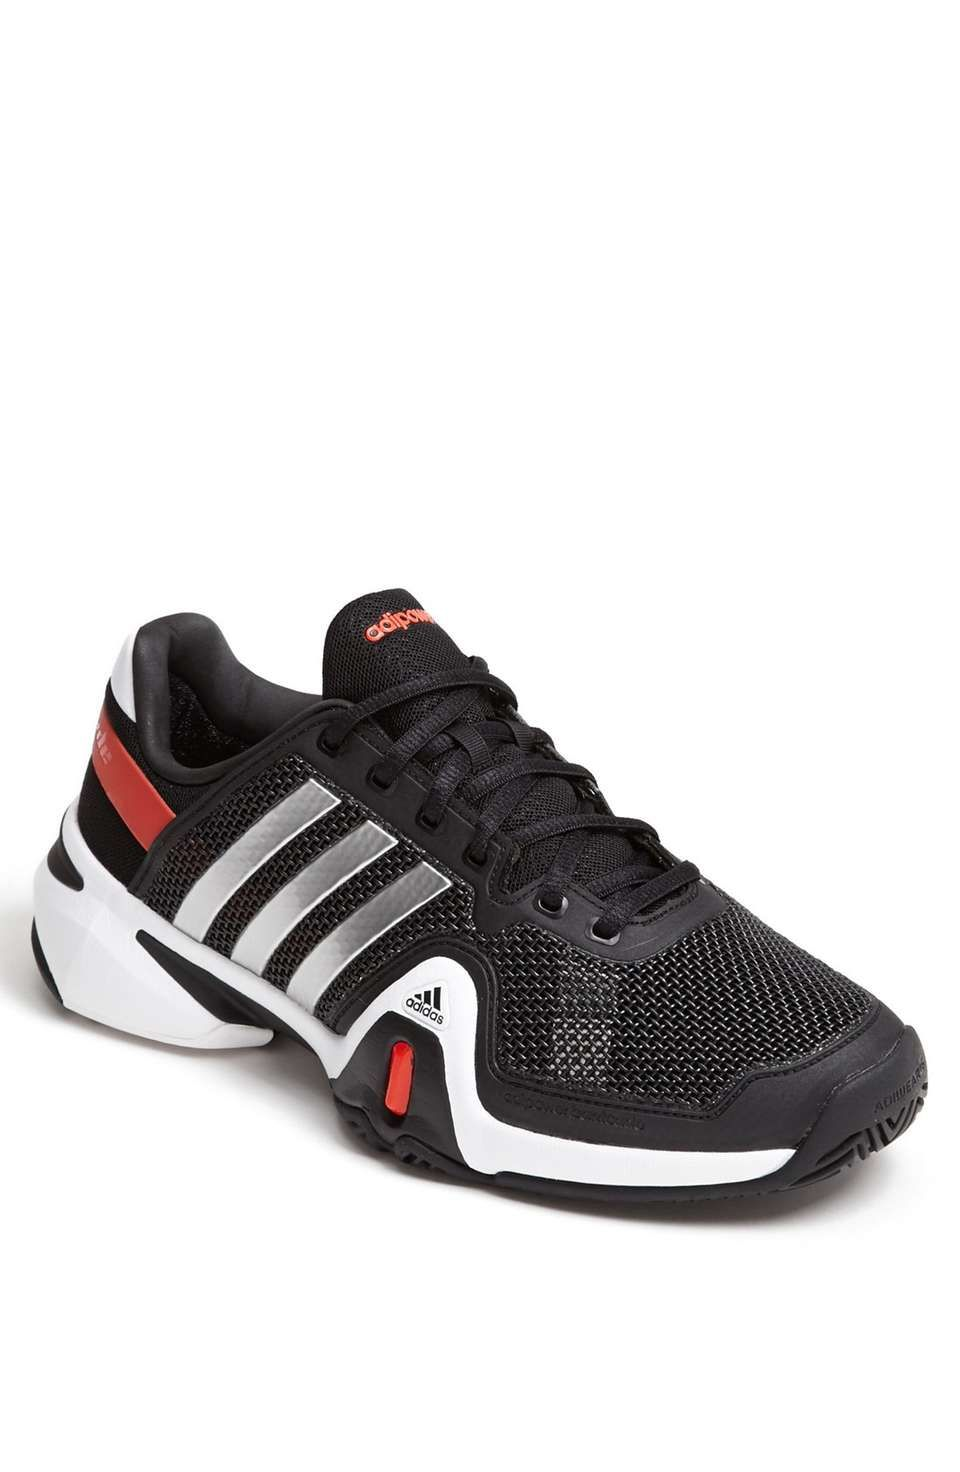 new york 3ad1e 67cc2 2014 cheap nike shoes for sale info collection off big discount. Adidas  adidas  adiPower Barricade 8